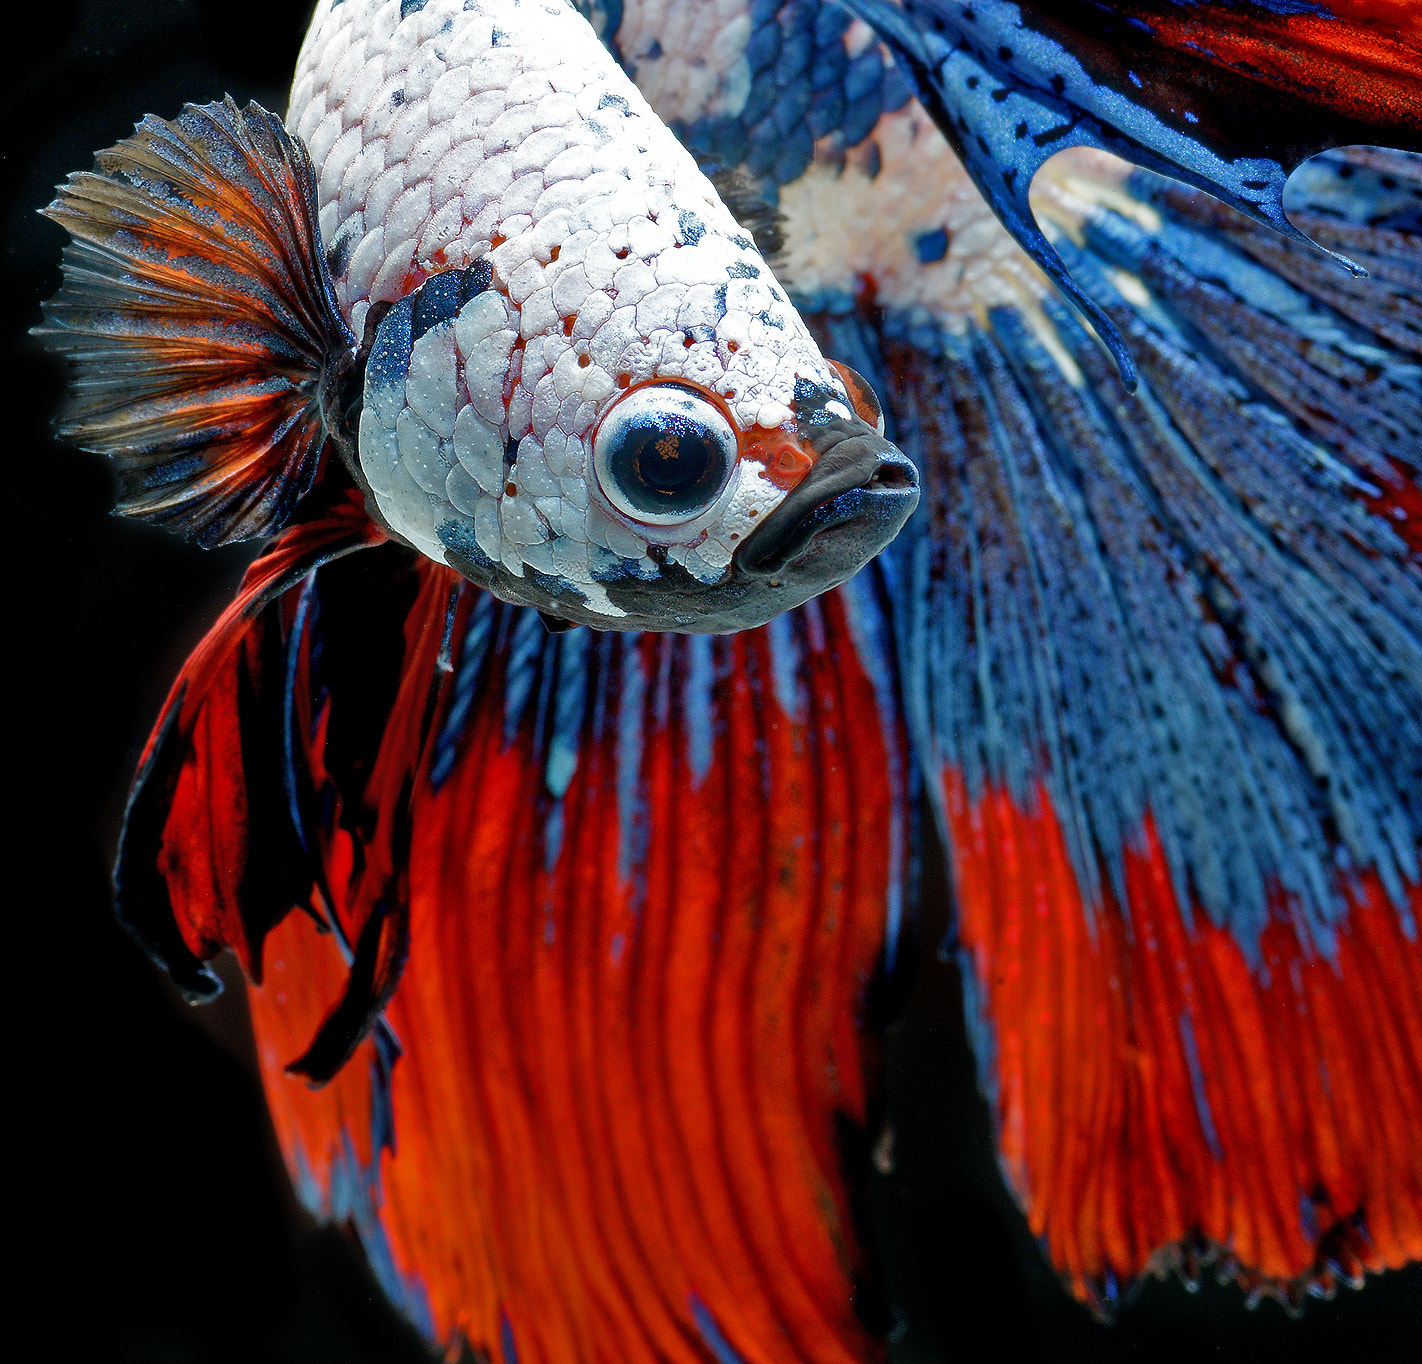 Photograph siamese fighting fish by visarute angkatavanich on 500px